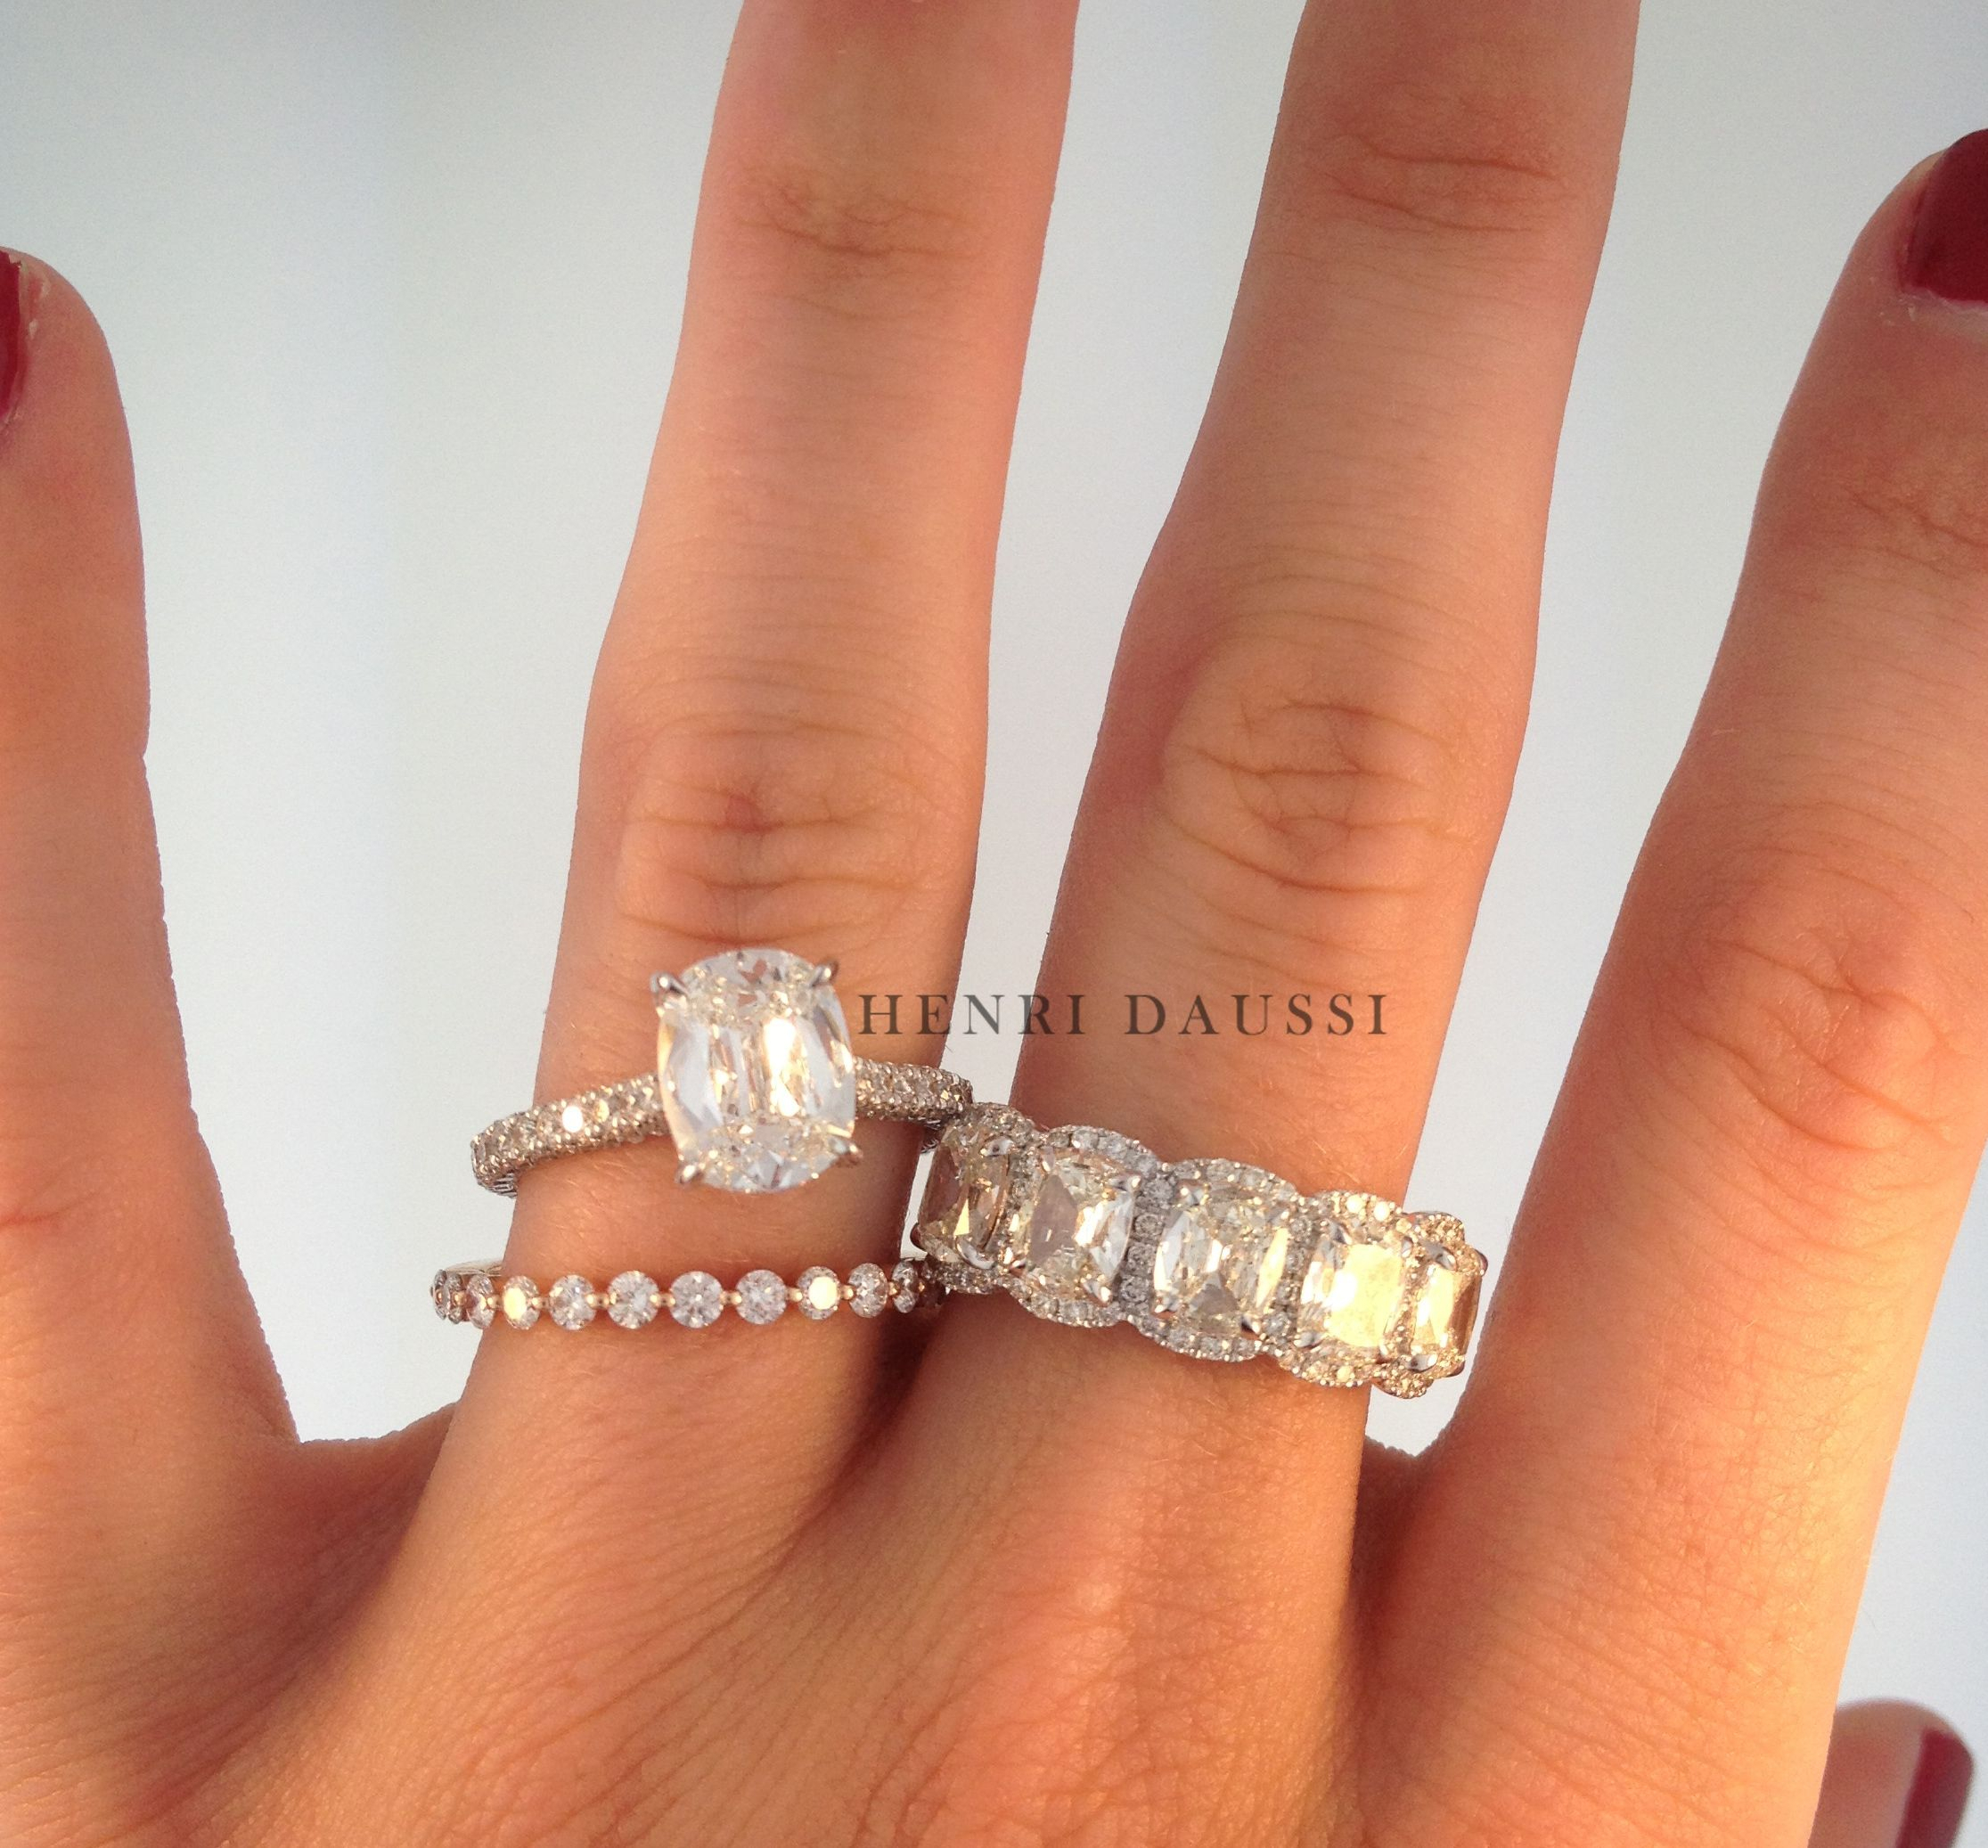 Solitaire Engagement Ring, Rose Gold Diamond Band And 5 Within Most Recently Released Diamond Bubble Five Stone Anniversary Bands In White Gold (View 24 of 25)